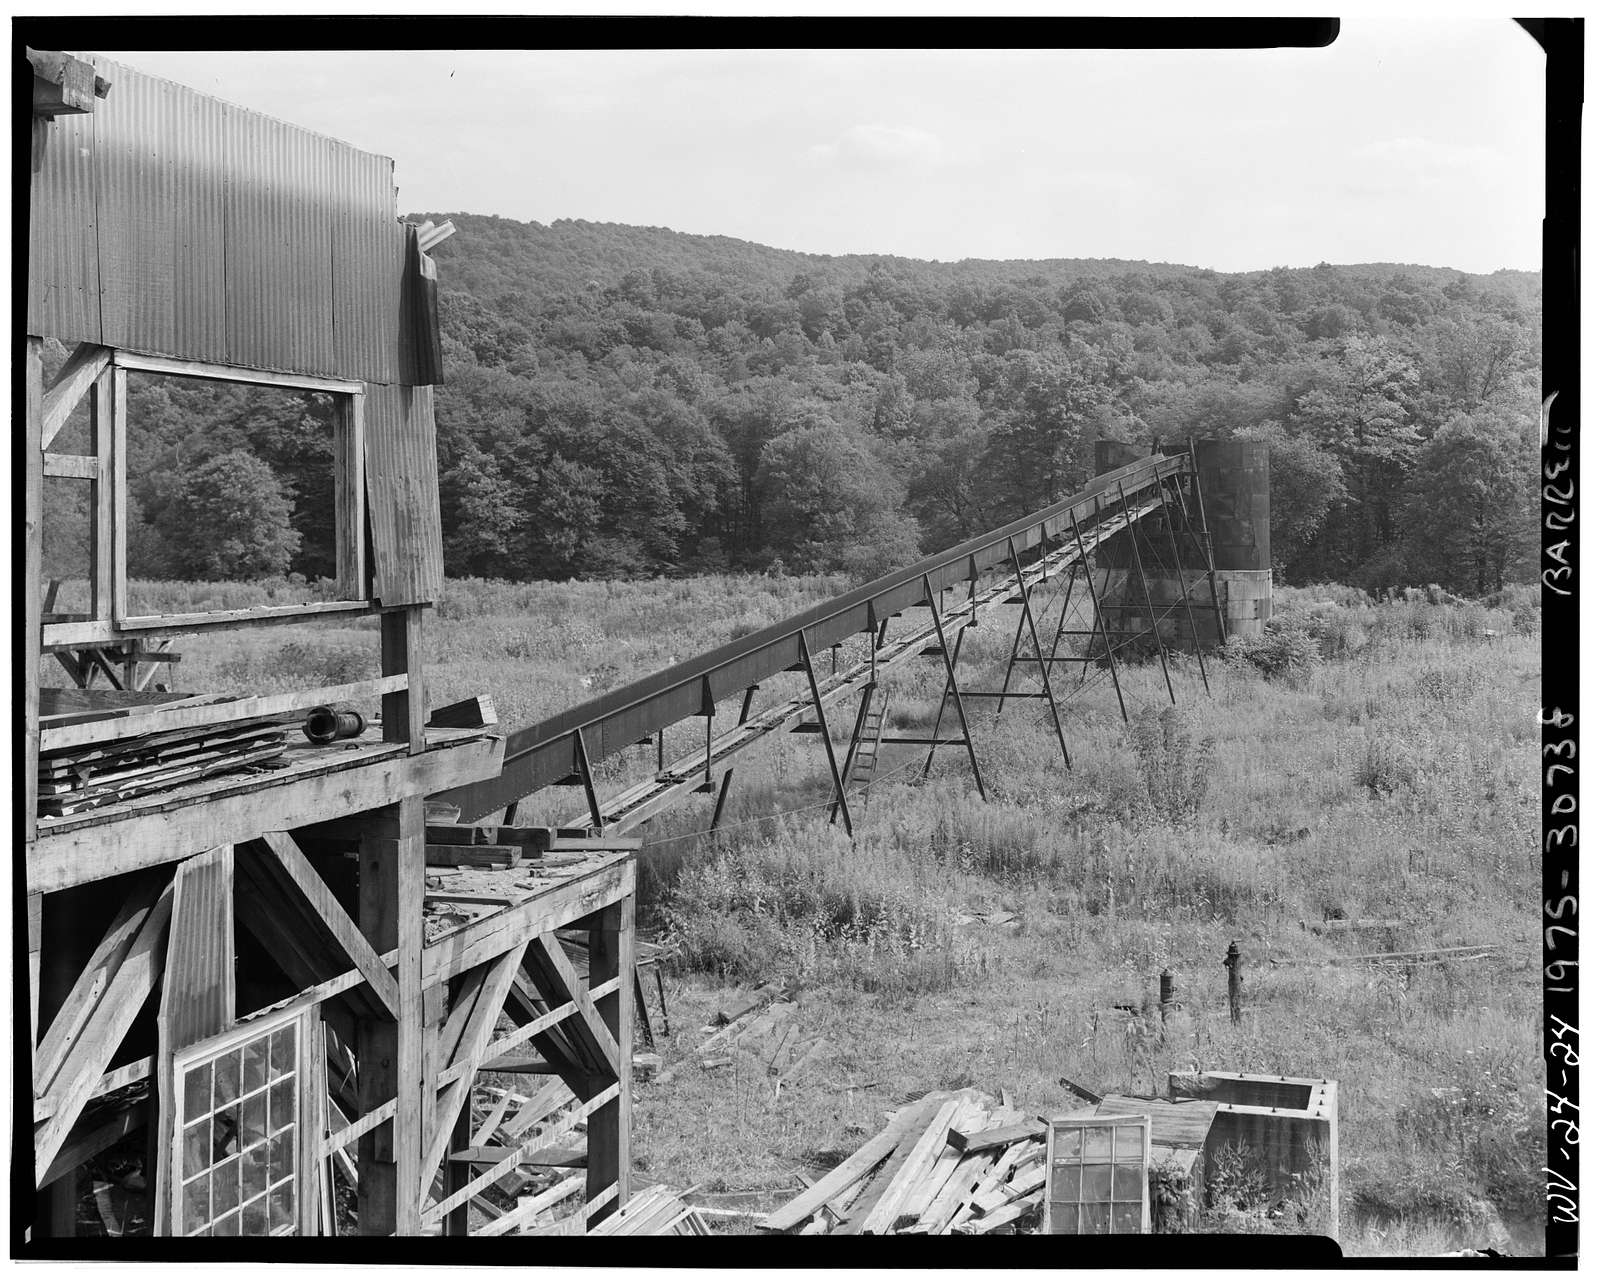 Meadow River Lumber Company, Highway 60, Rainelle, Greenbrier County, WV